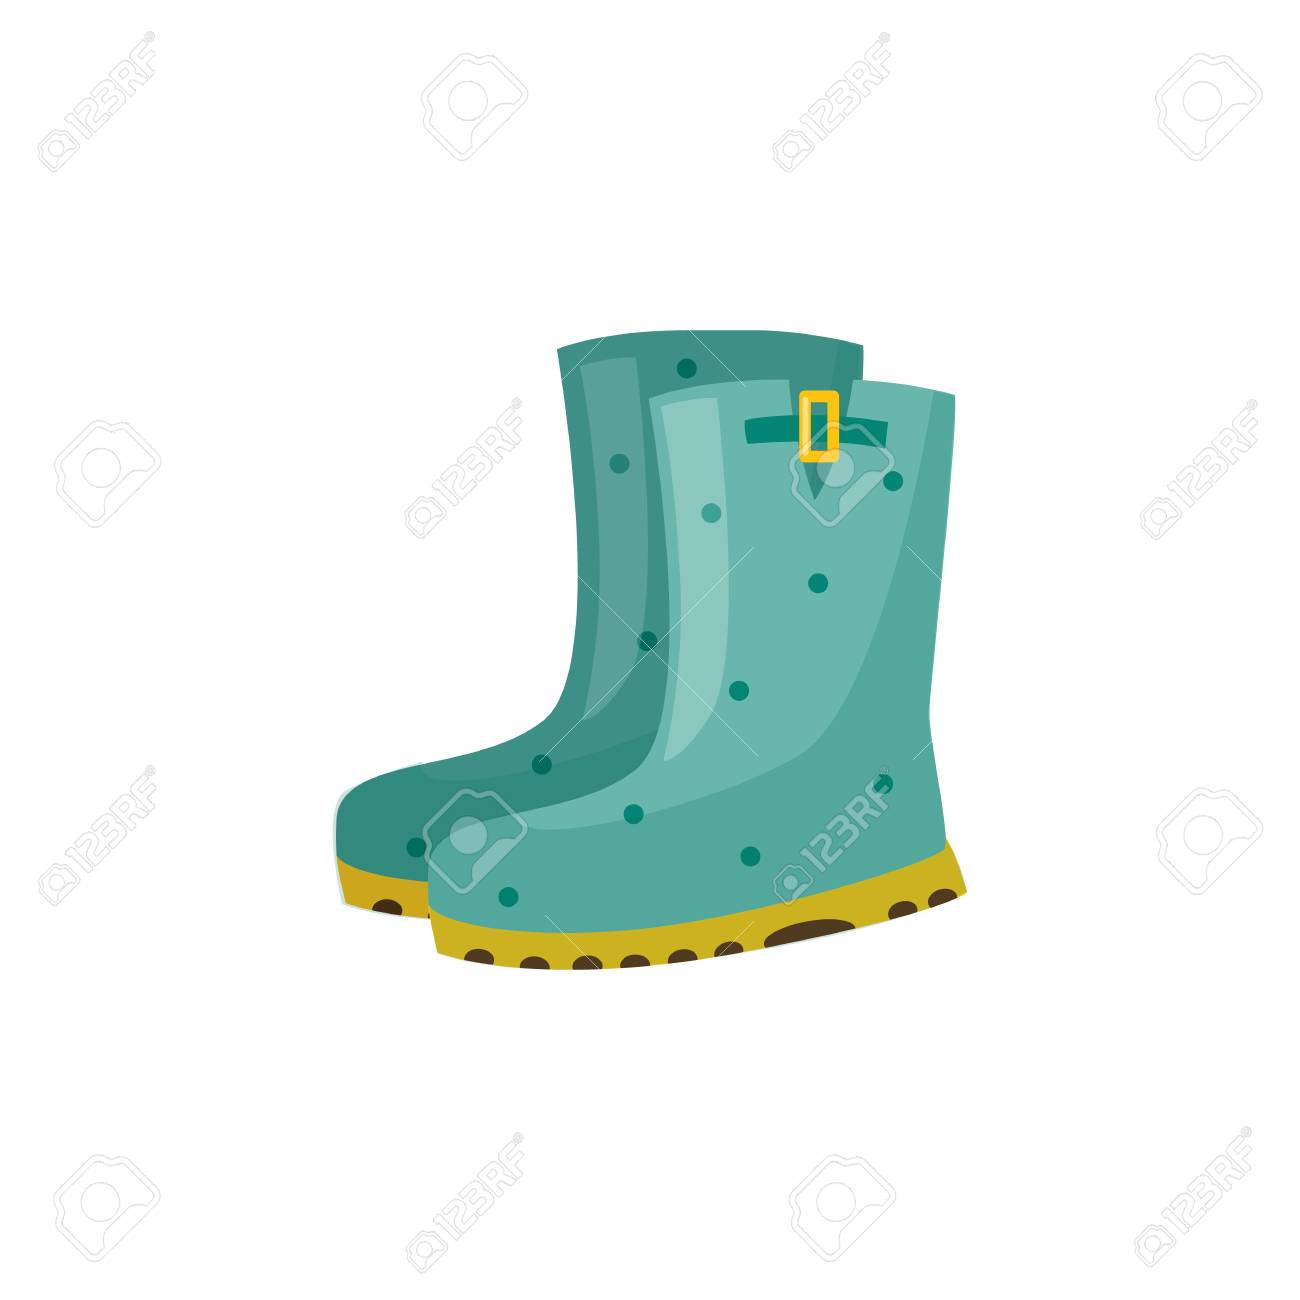 Pair of rubber boot in turquoise color - waterproof autumn footwear for seasonal design in flat style. Isolated vector illustration of gumboots for protection against water and puddles. - 104140140